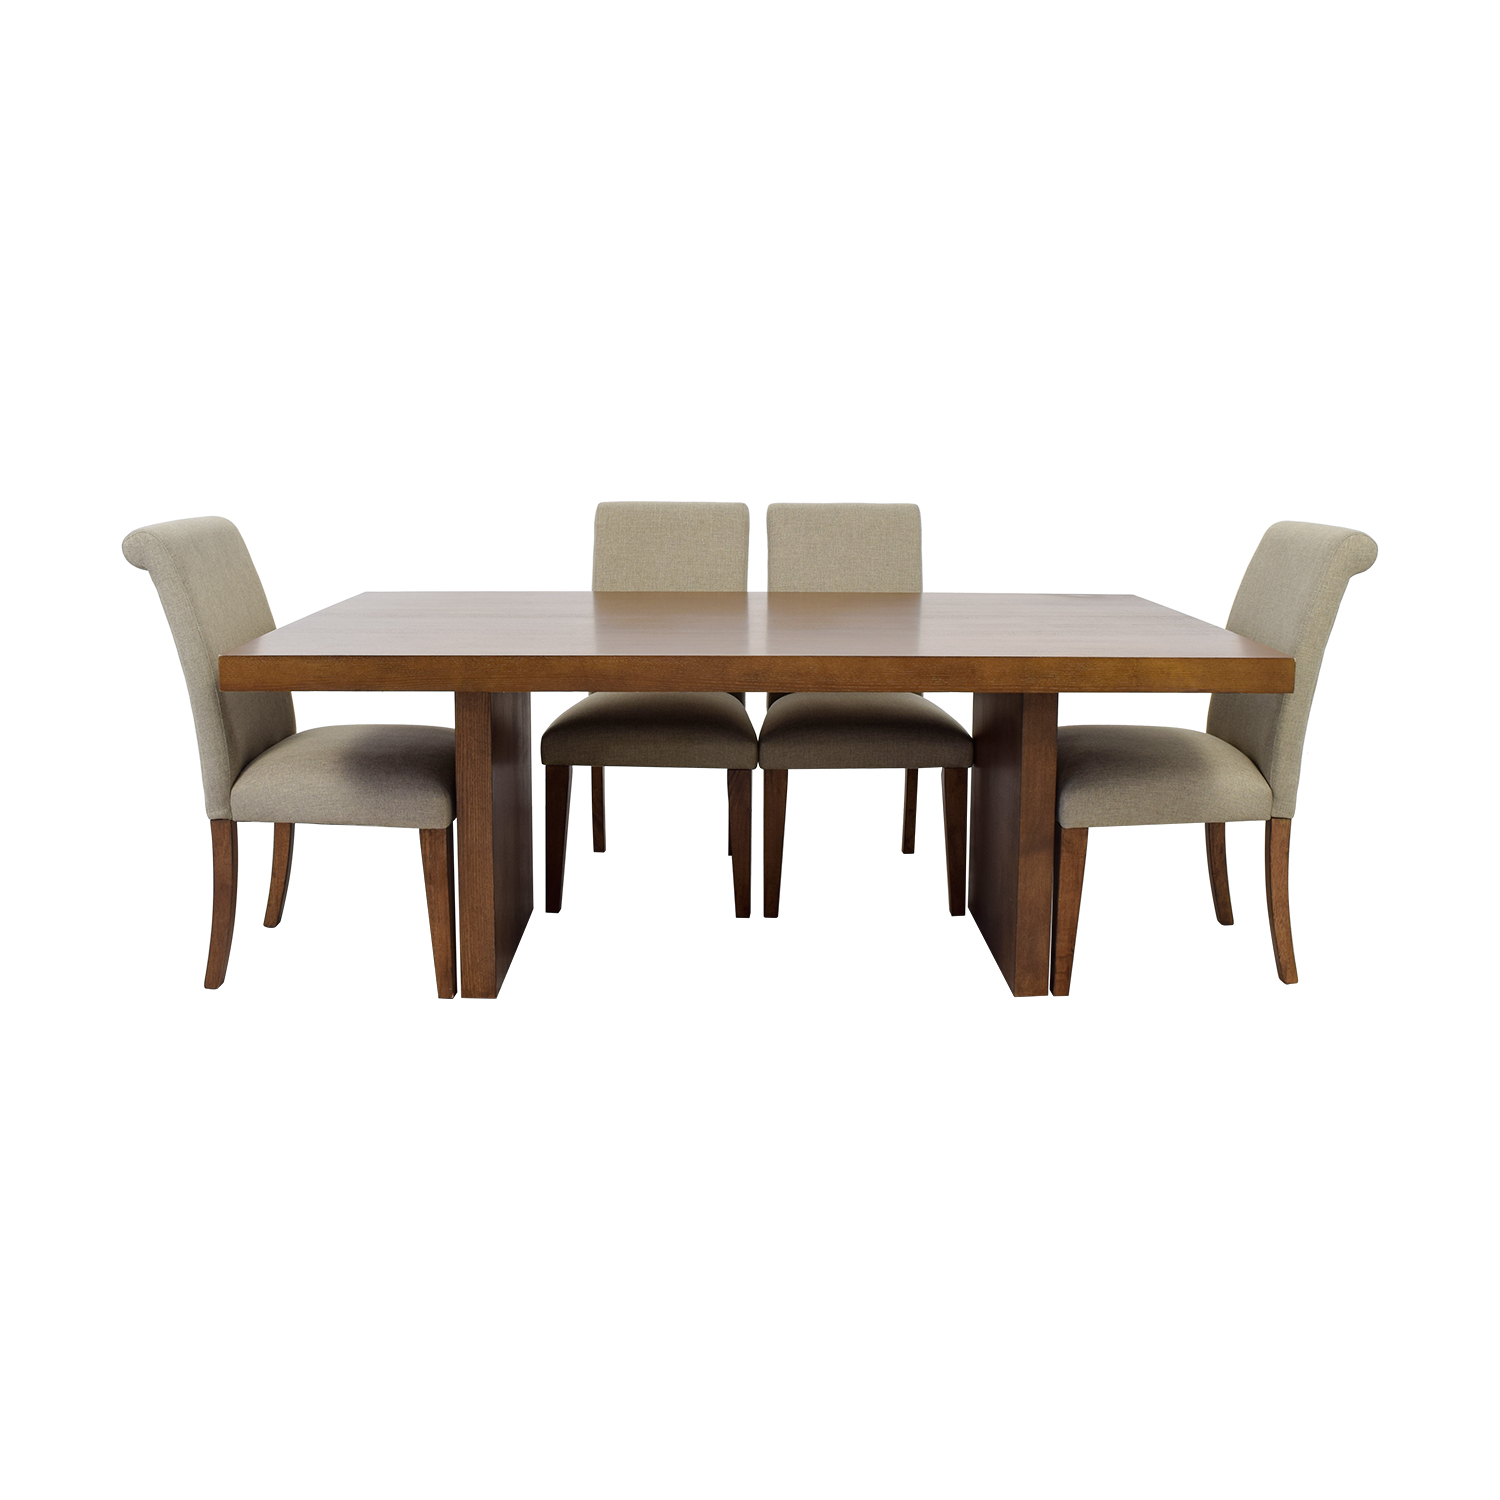 Macy's Macy's Wood Dining Set with Upholstered Chairs Dining Sets